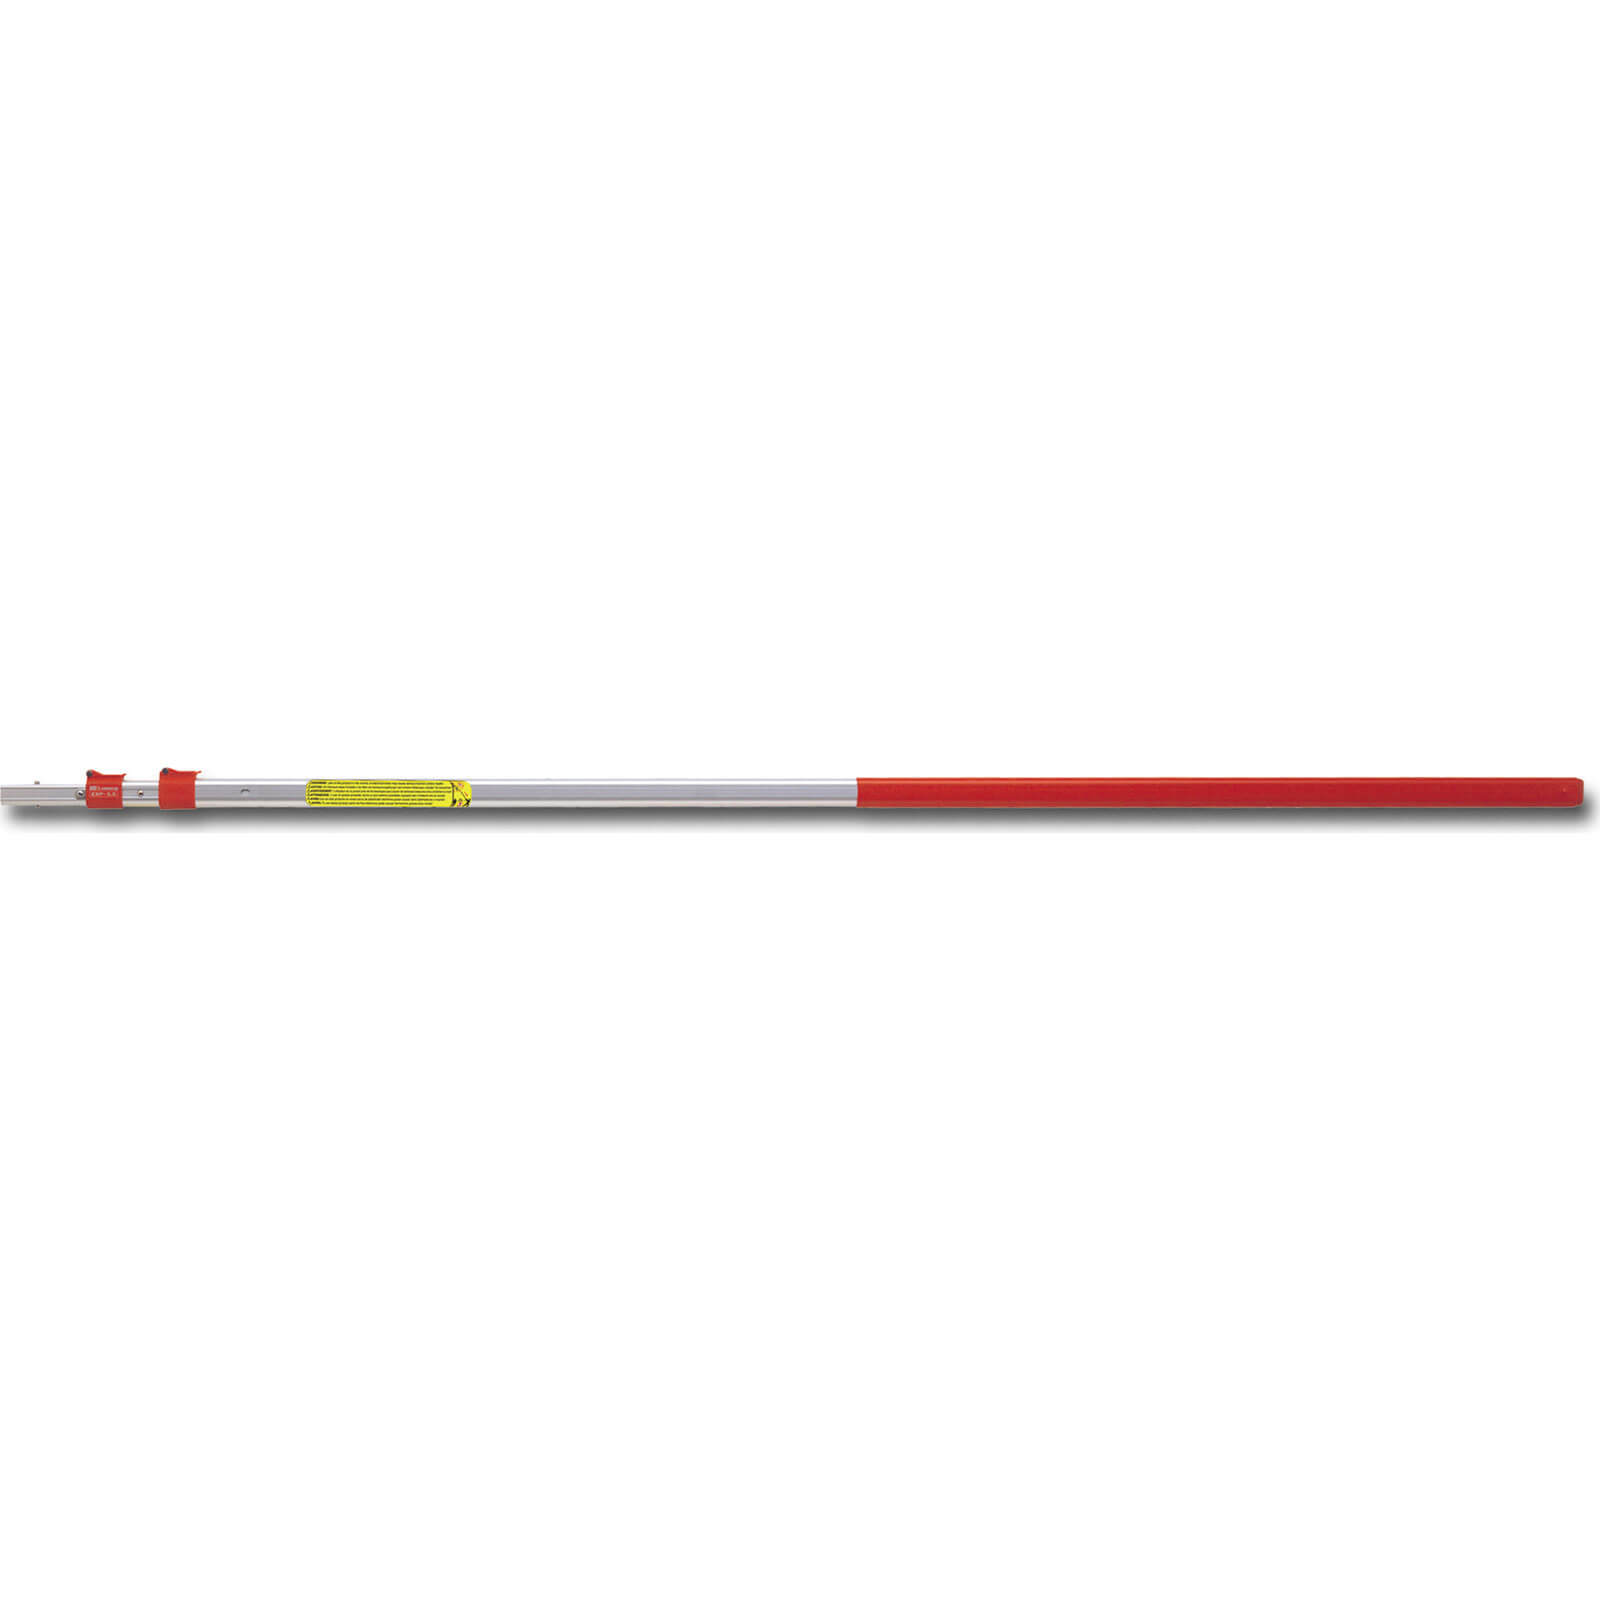 ARS EXP-5.5 Telescopic Pole for Pole Saw Blade Heads 2.1 - 5.6 Metres Long